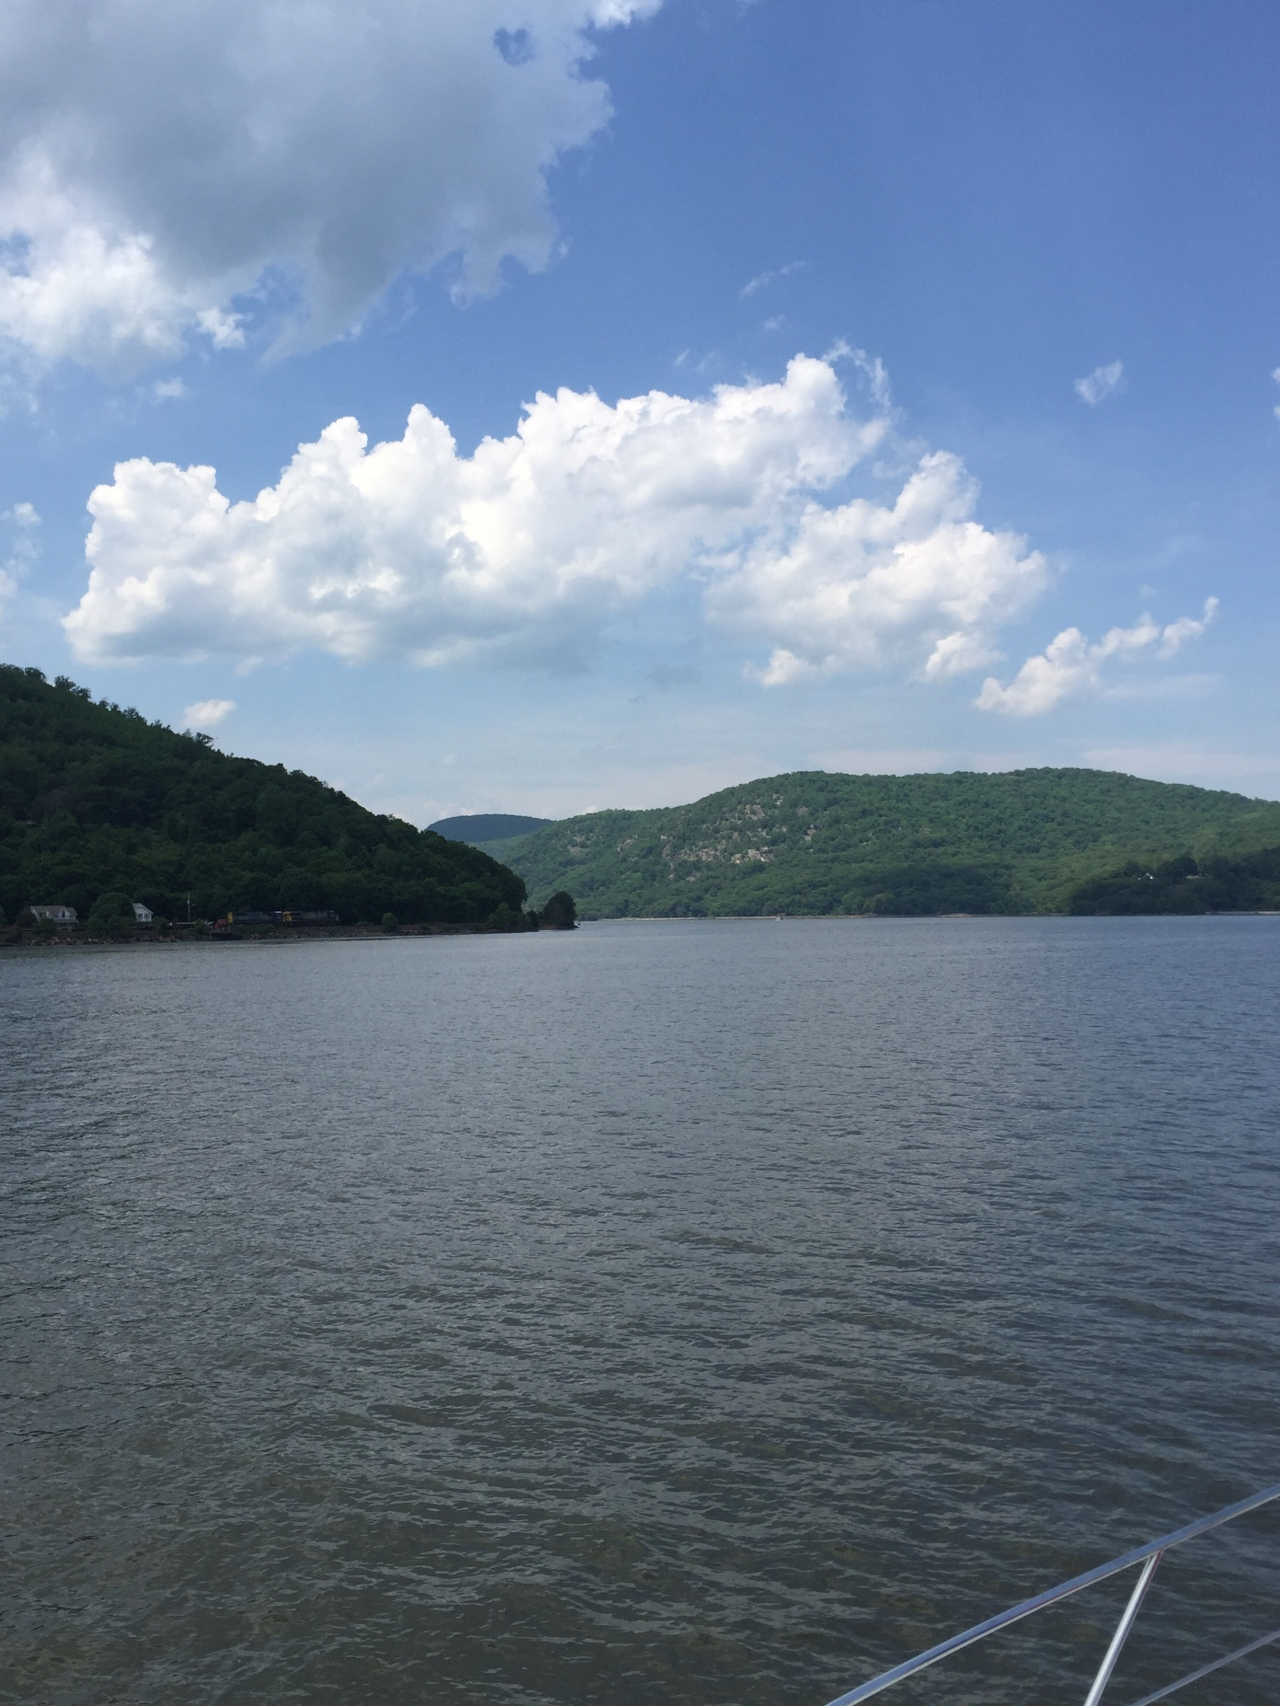 Up the Hudson to WestPoint